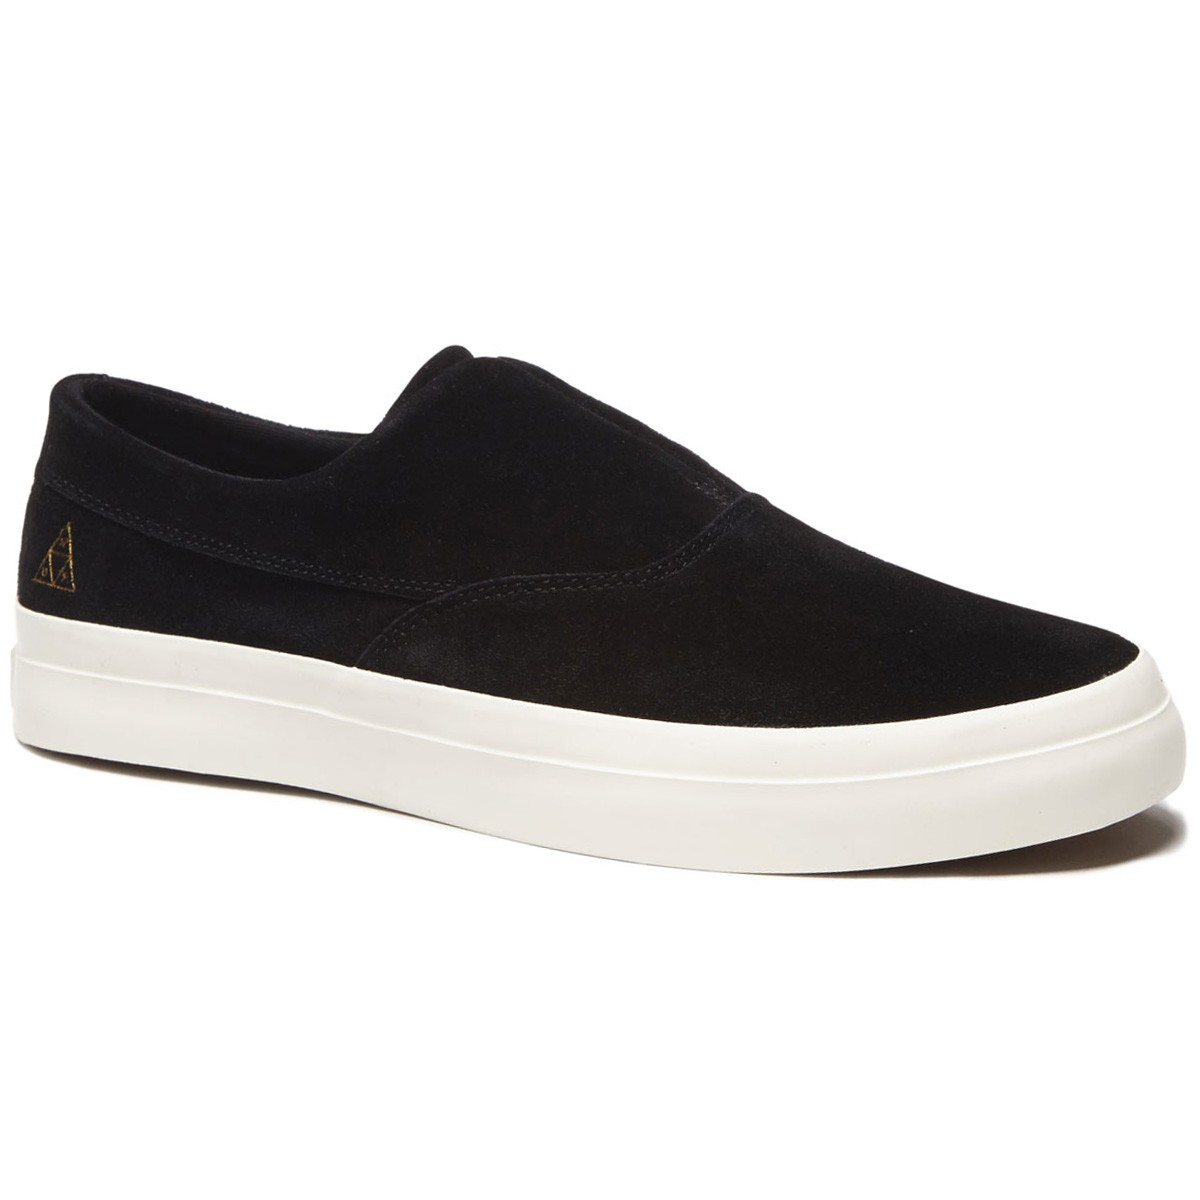 6aeda4927b HUF Dylan Slip On Shoes